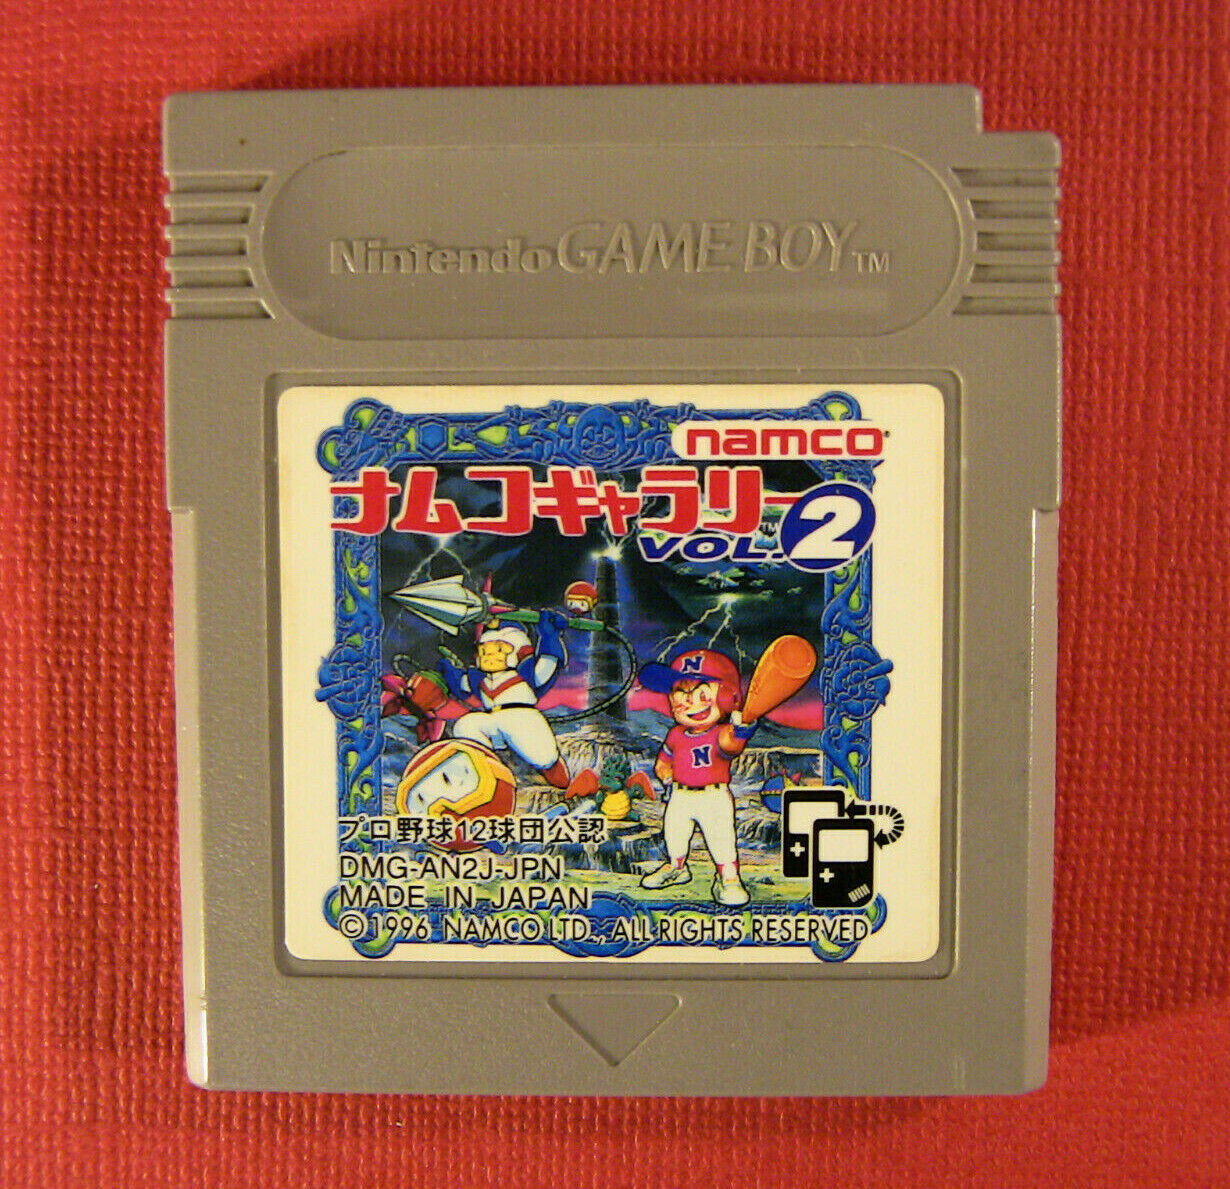 Namco Gallery Vol. 2 (Nintendo Game Boy GB, 1996) Japan Dig  Dug Galaxian Druaga